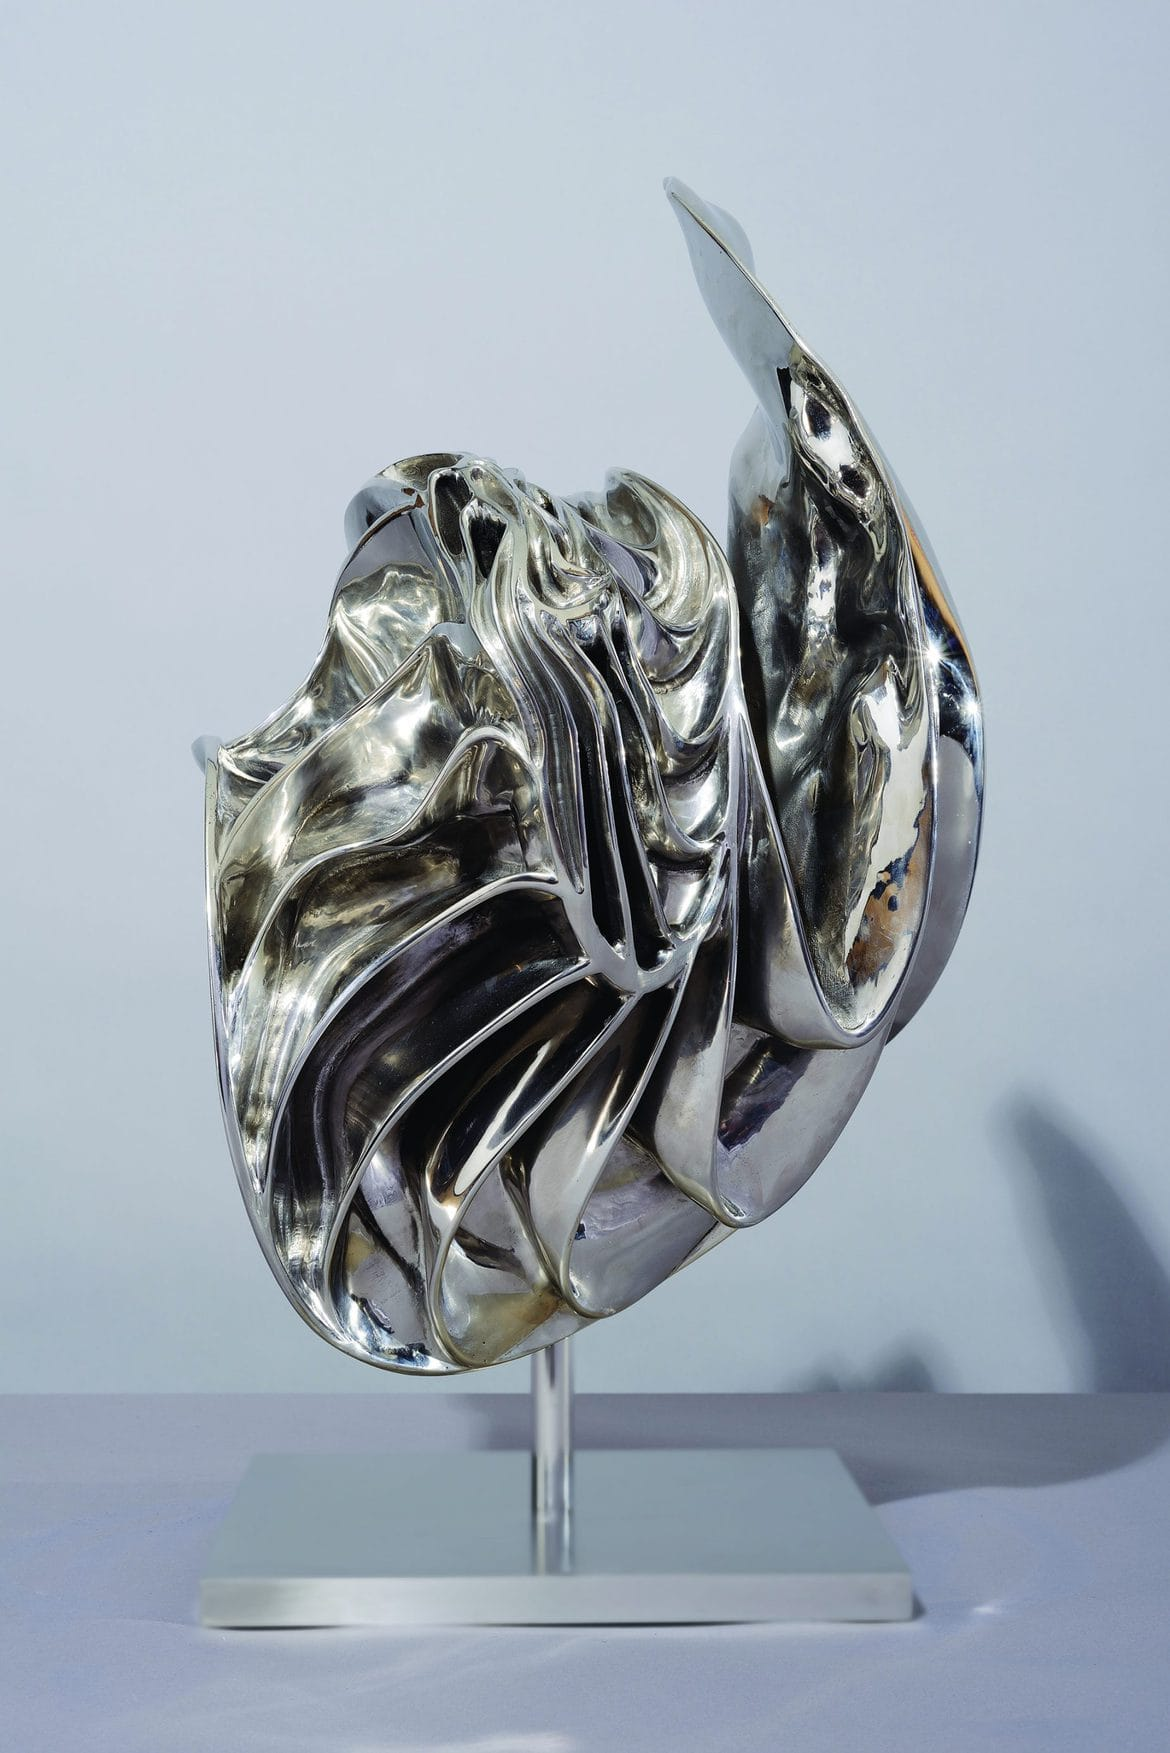 'Molten Concept 19', 2012, stainless steel, 67 x 50 x 44 cm, edition 1 of 7 + 1AP